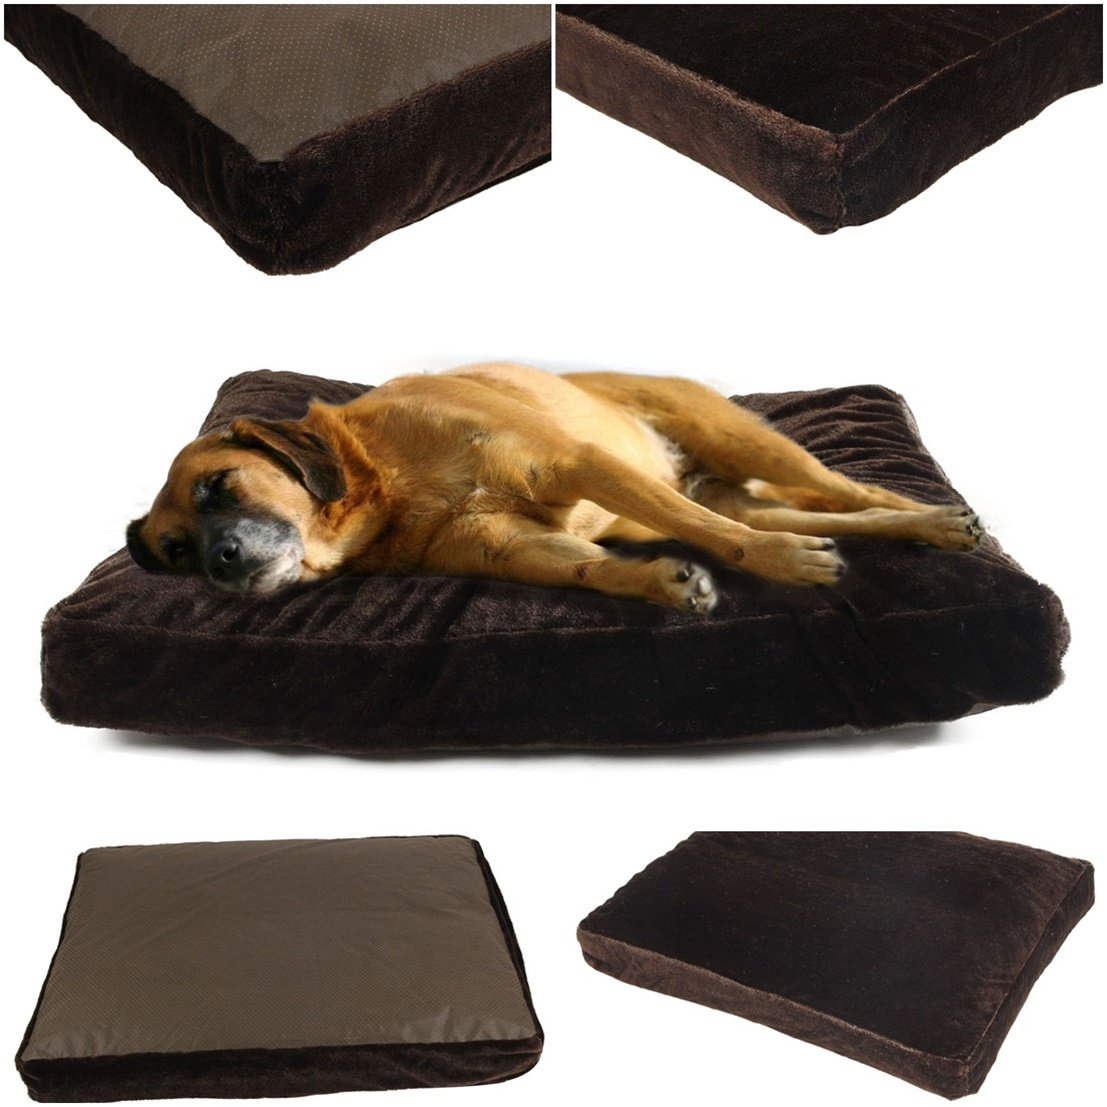 1Pcs Perfectly Popular Pet Bed Cover Size L 36'' x 29'' Dirty Protects Warm Case Cat Pillow Color Type Coffee PV Fleece